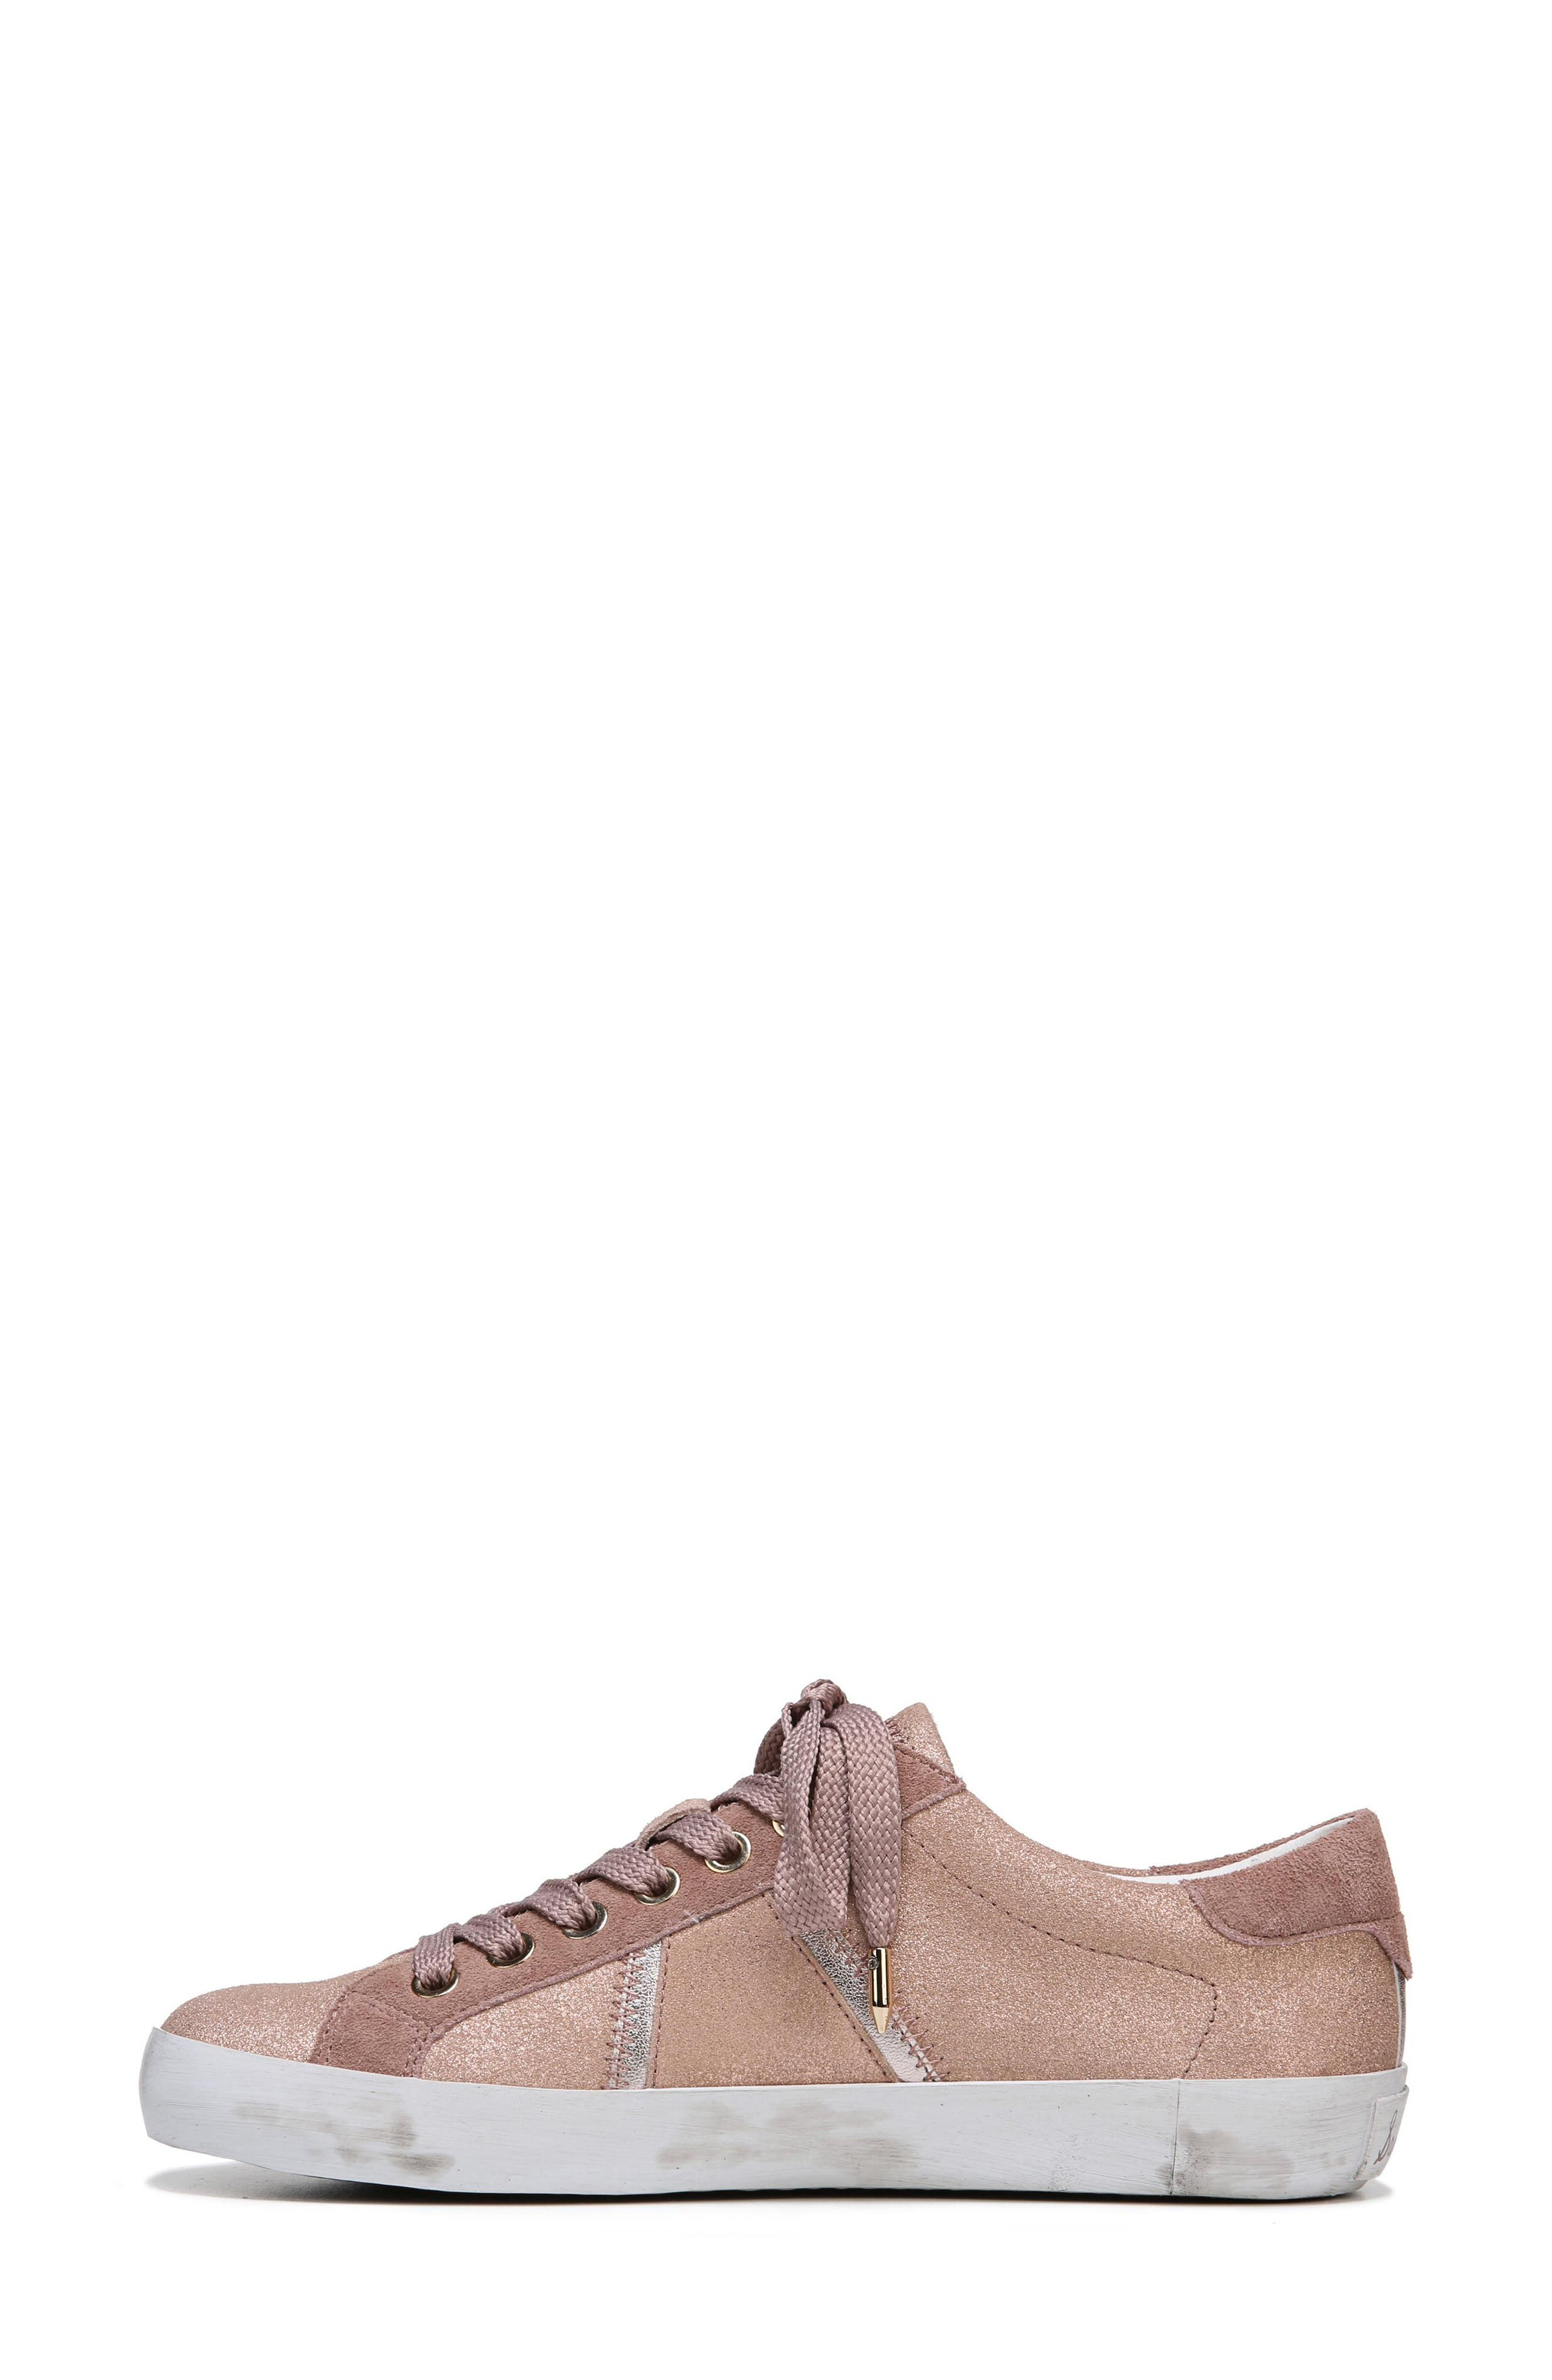 Baylee Sneaker,                             Alternate thumbnail 4, color,                             Blush Suede